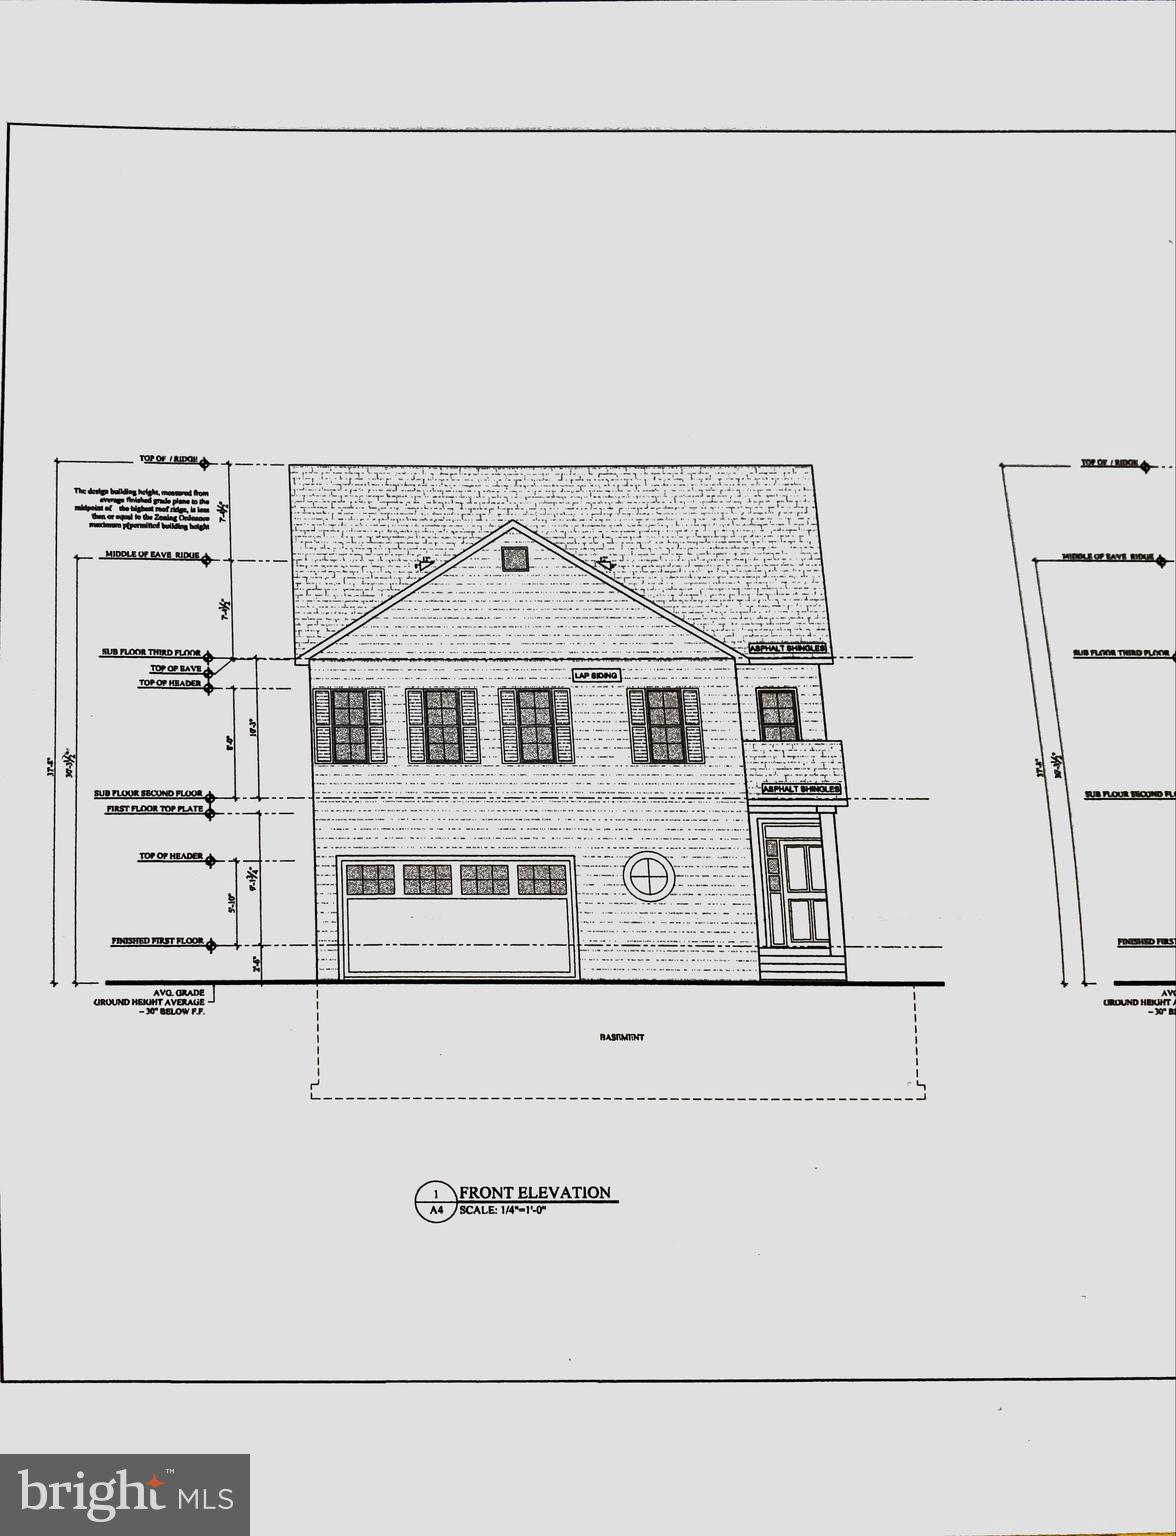 BRAND NEW construction with custom home to be built in 2022 on 5.62 Acre beautiful lot. Located in R